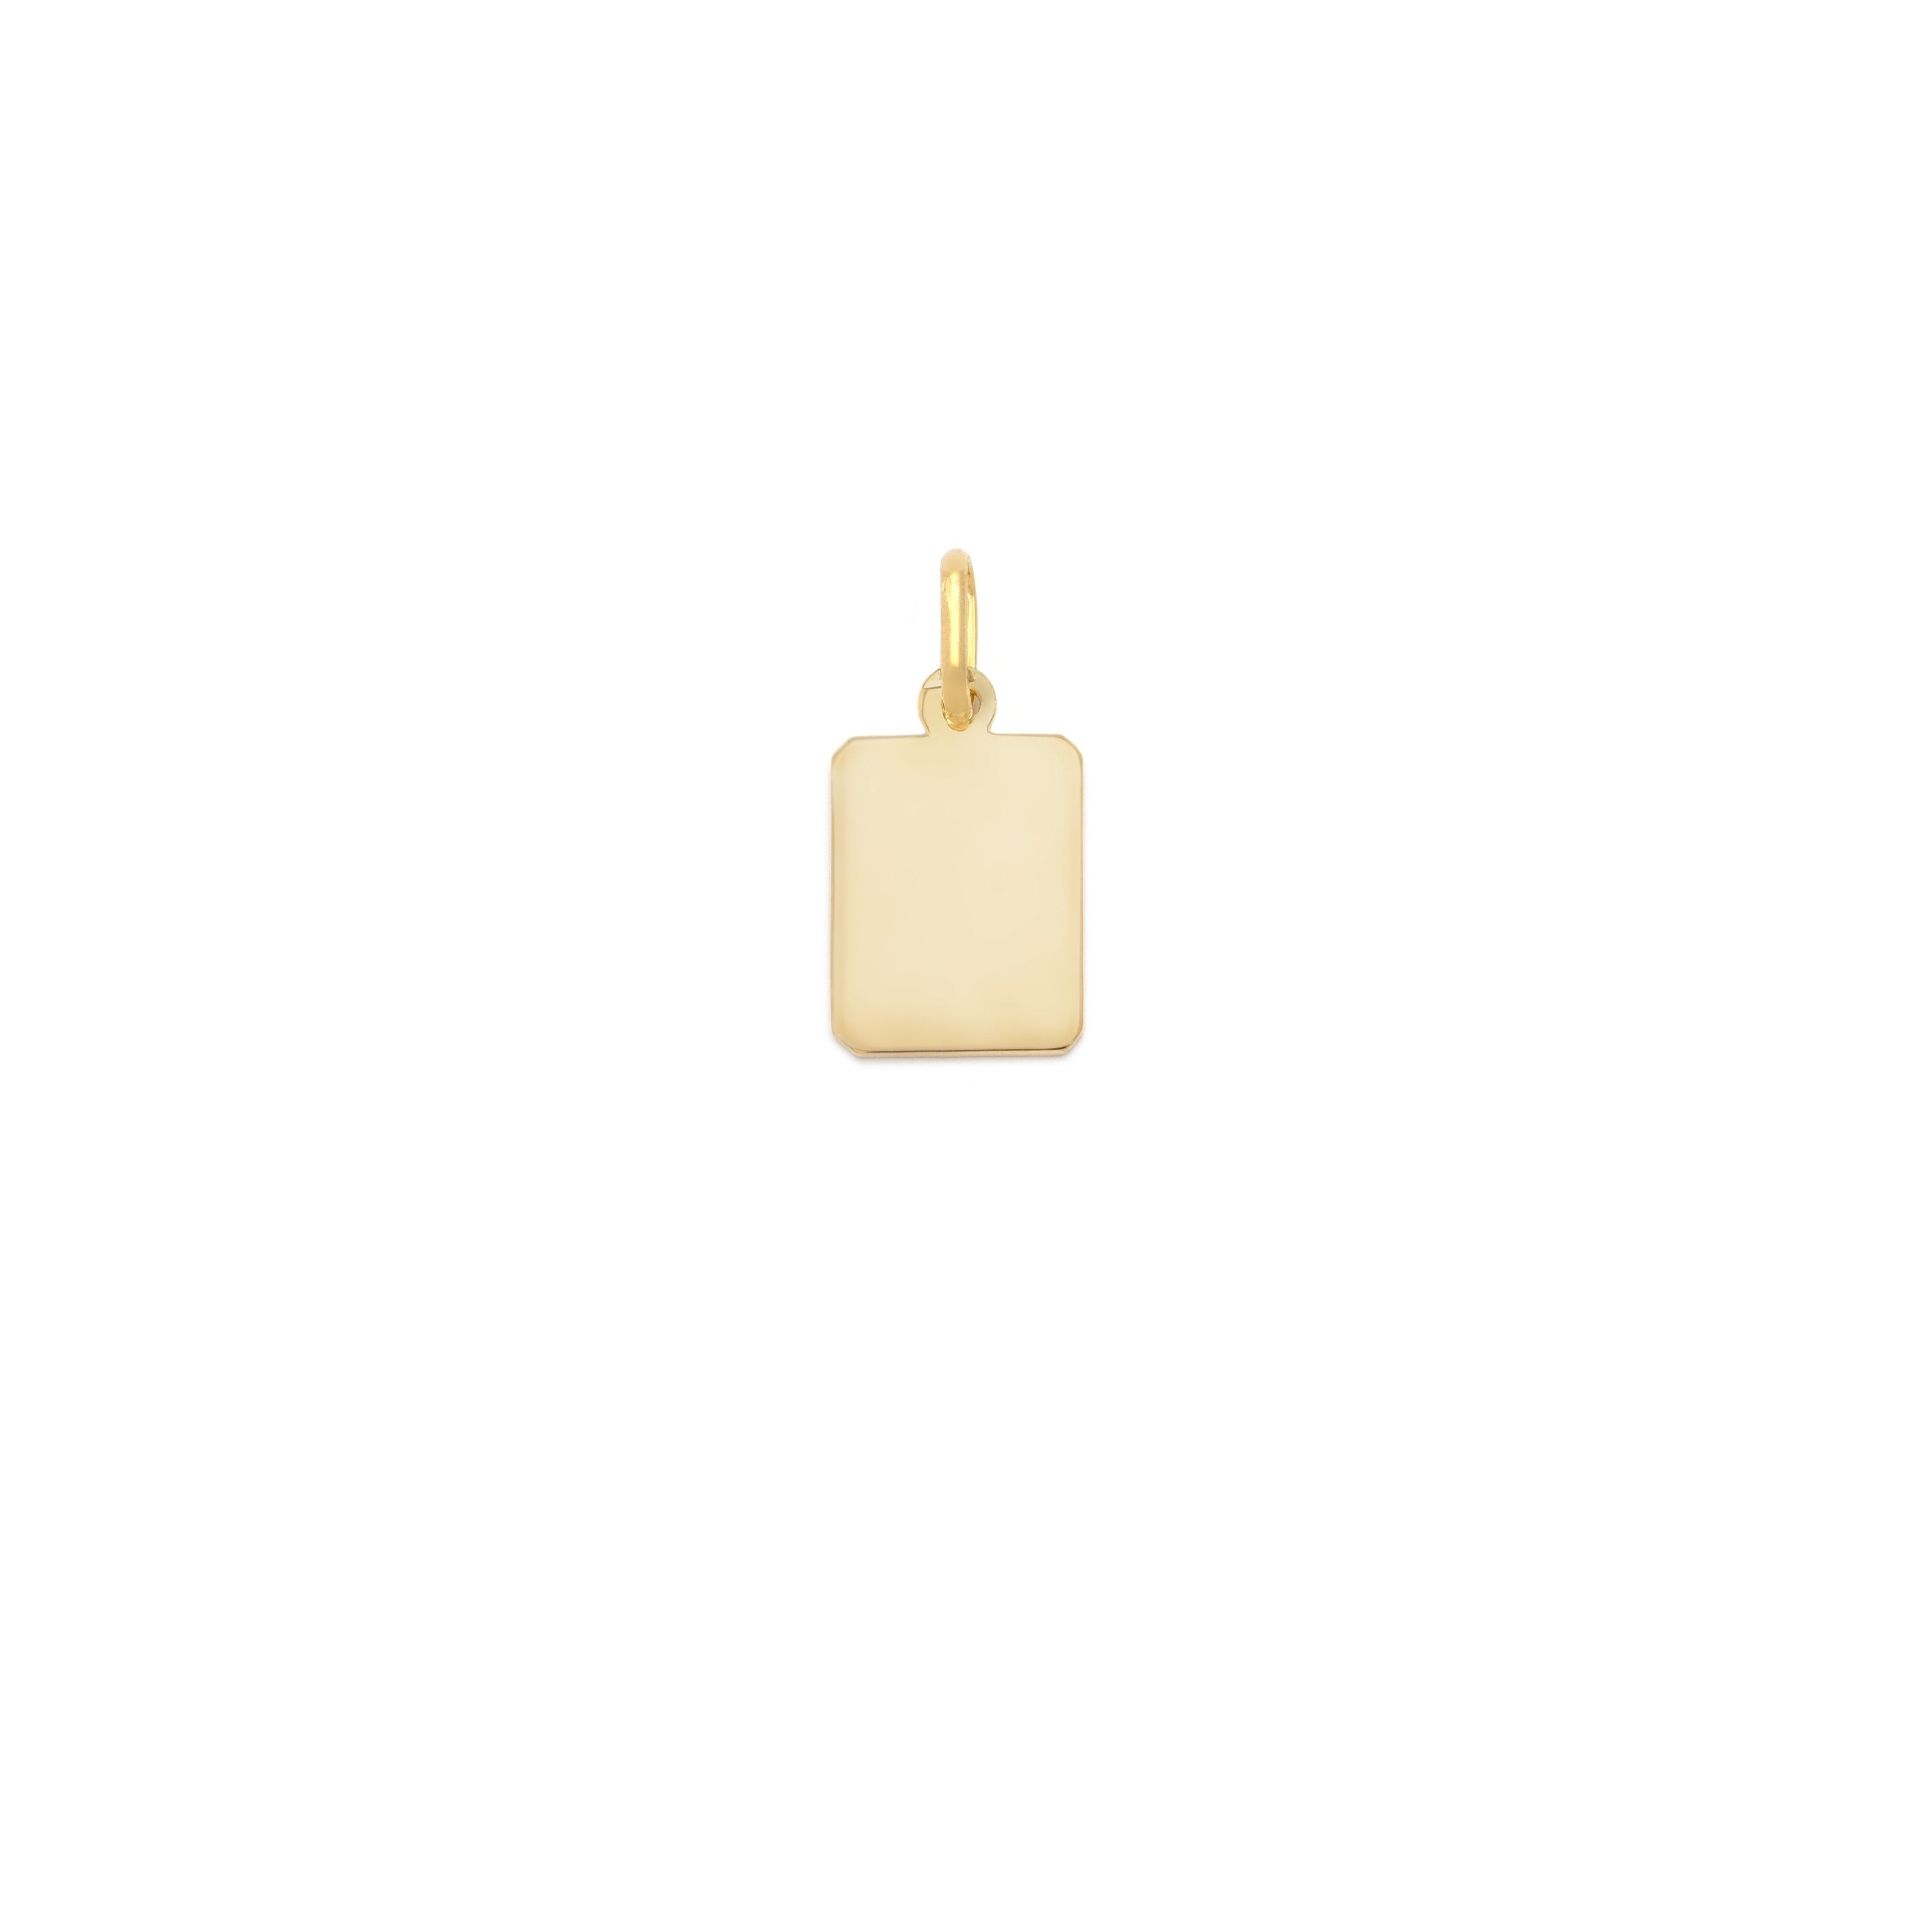 Mini Tag Pendant - 10k Solid Gold